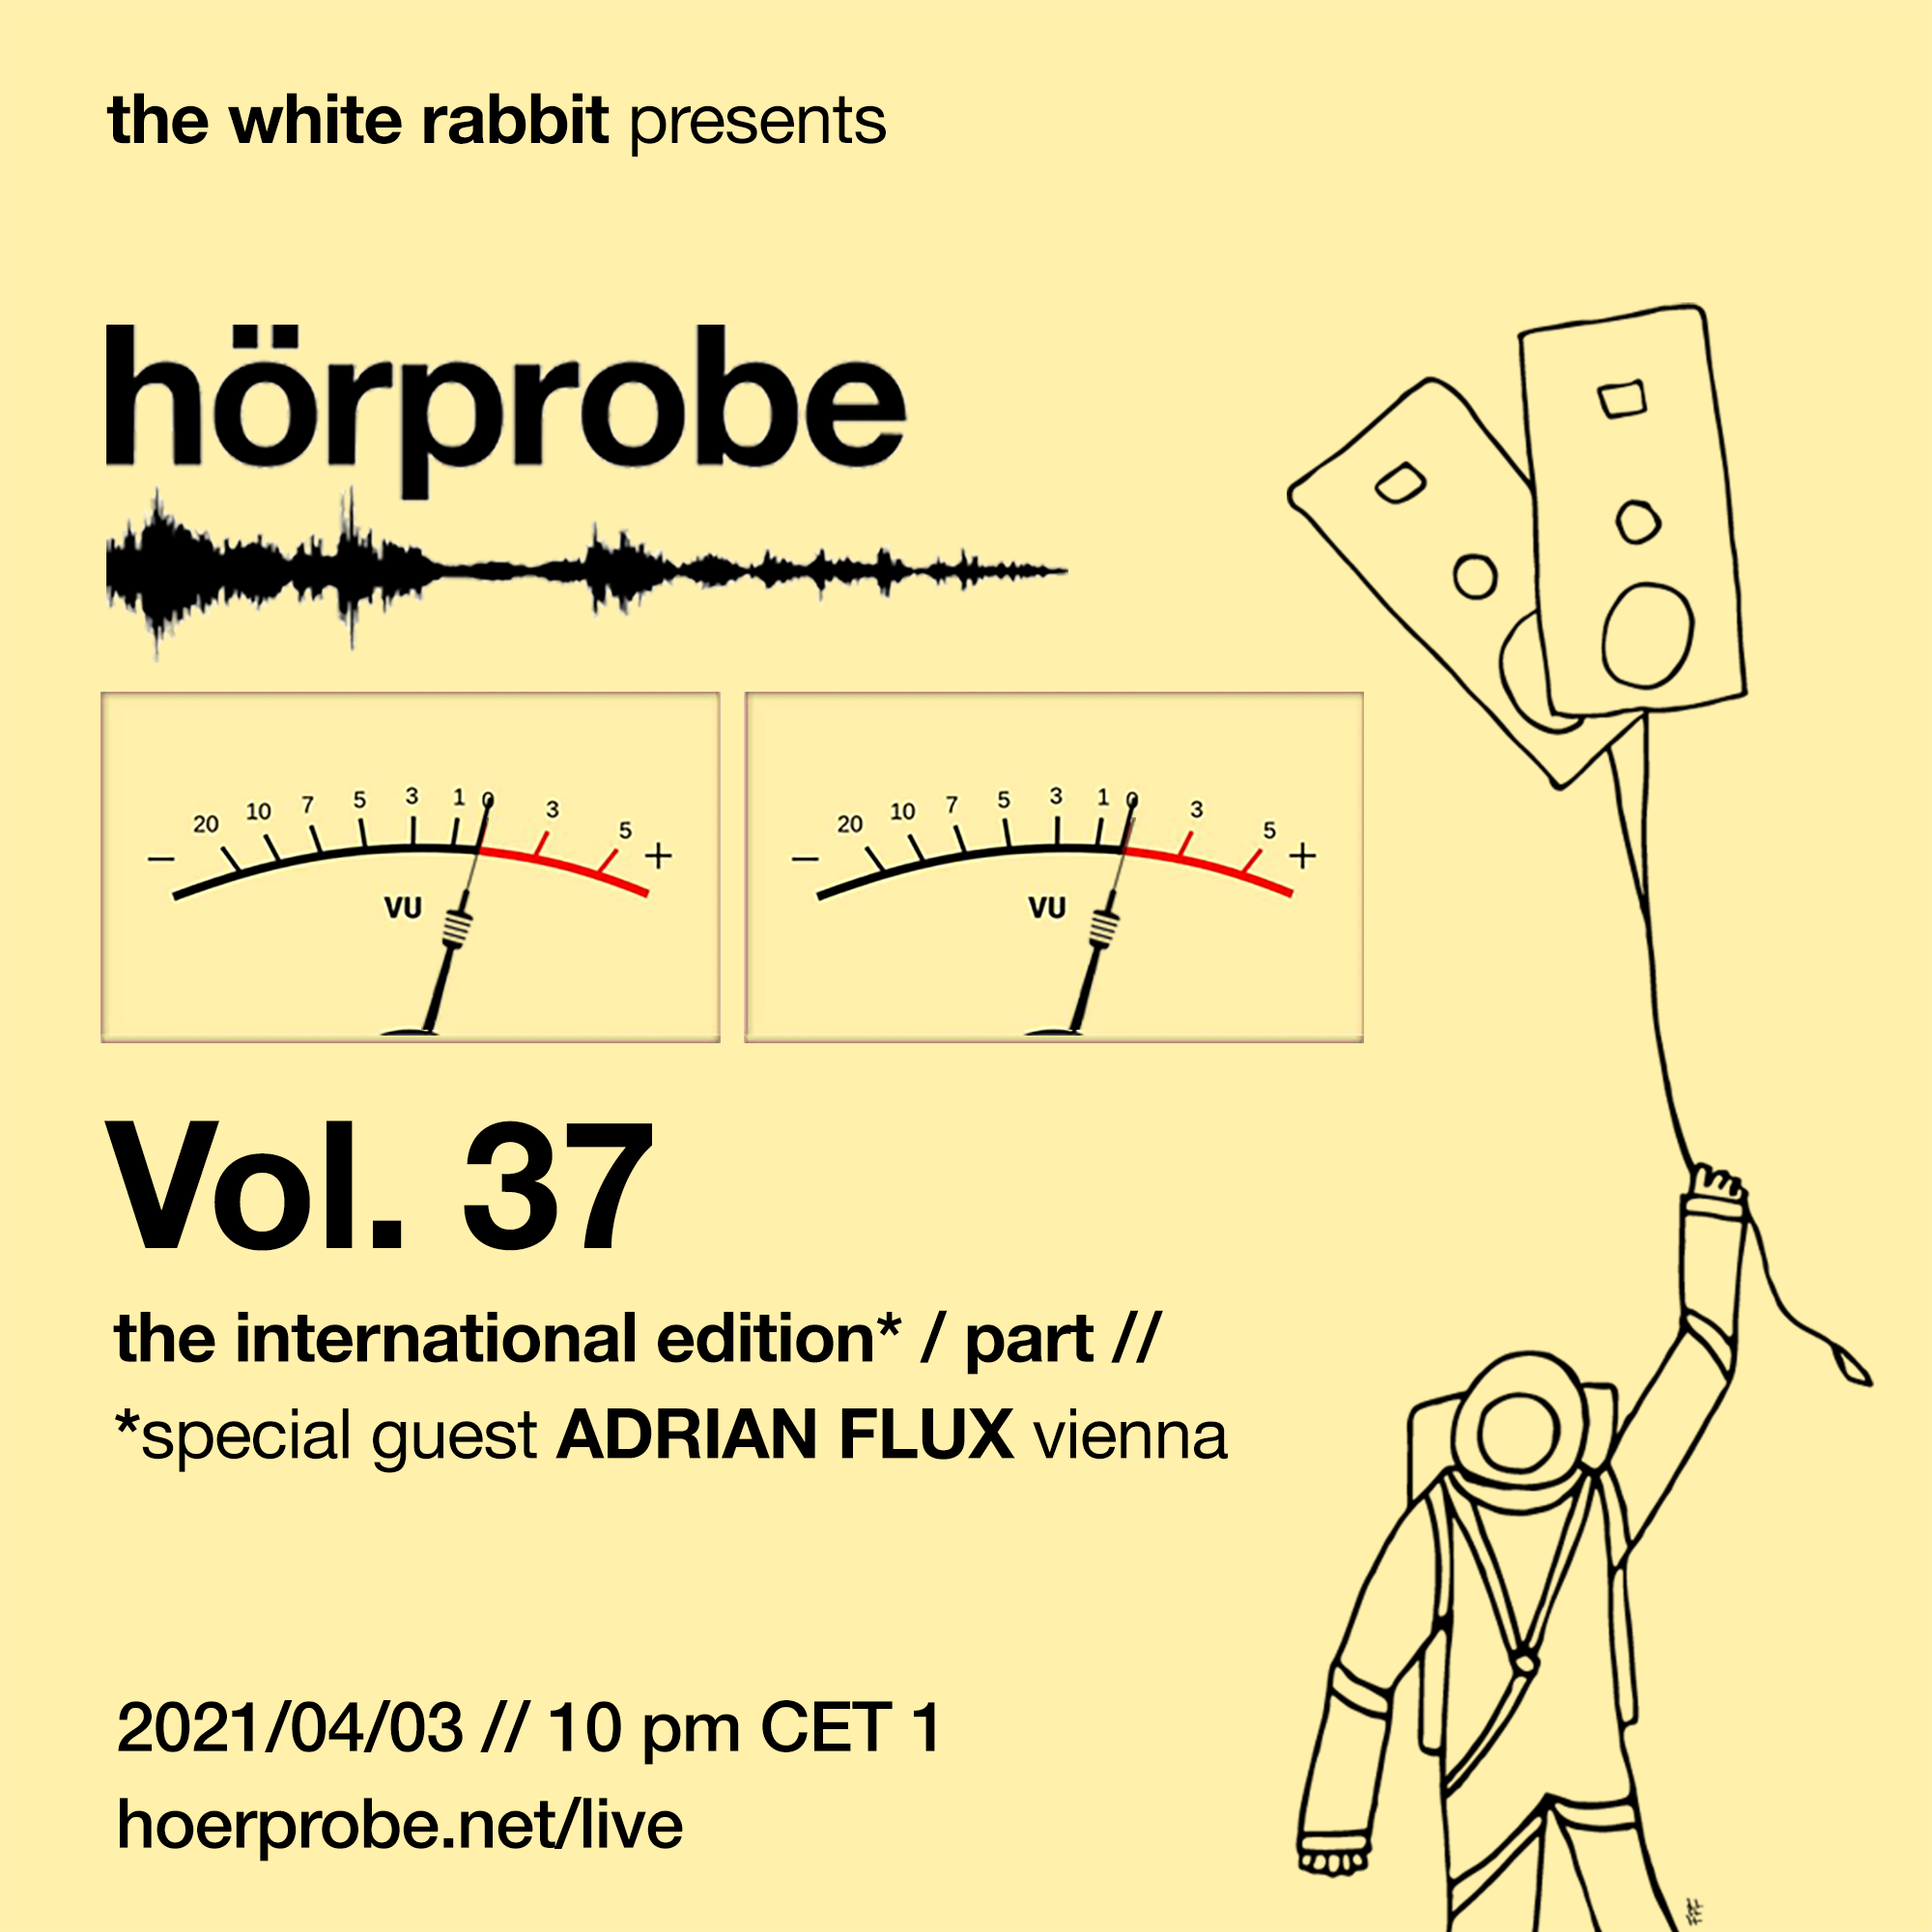 hörprobe Vol. 37 - the official home of hörprobe flyer